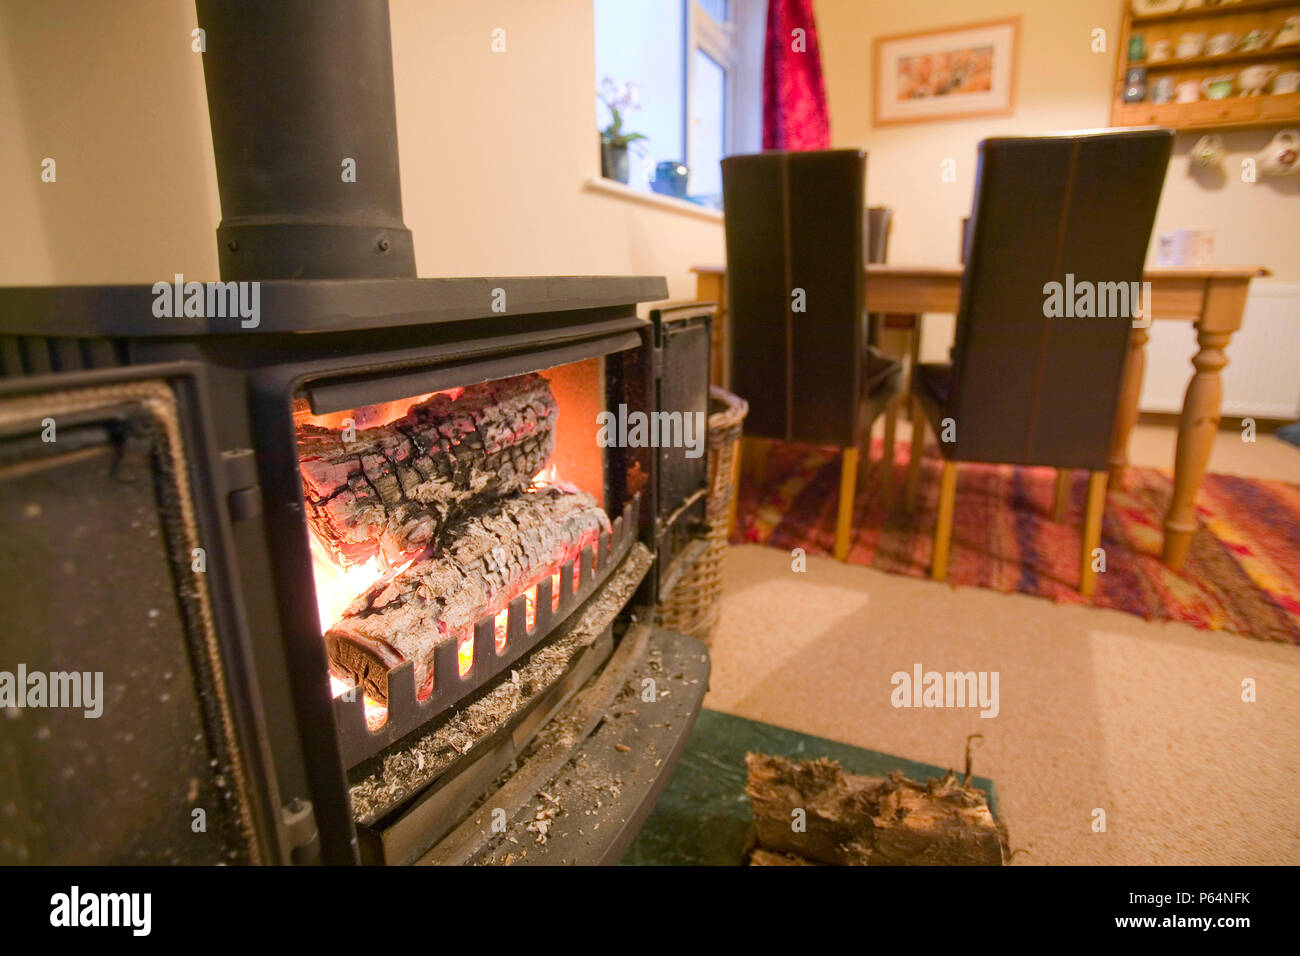 Using a log burning stove to heat a house is burning renewable fuel and therefore C02 neutral. Good for the carbon footprint - Stock Image